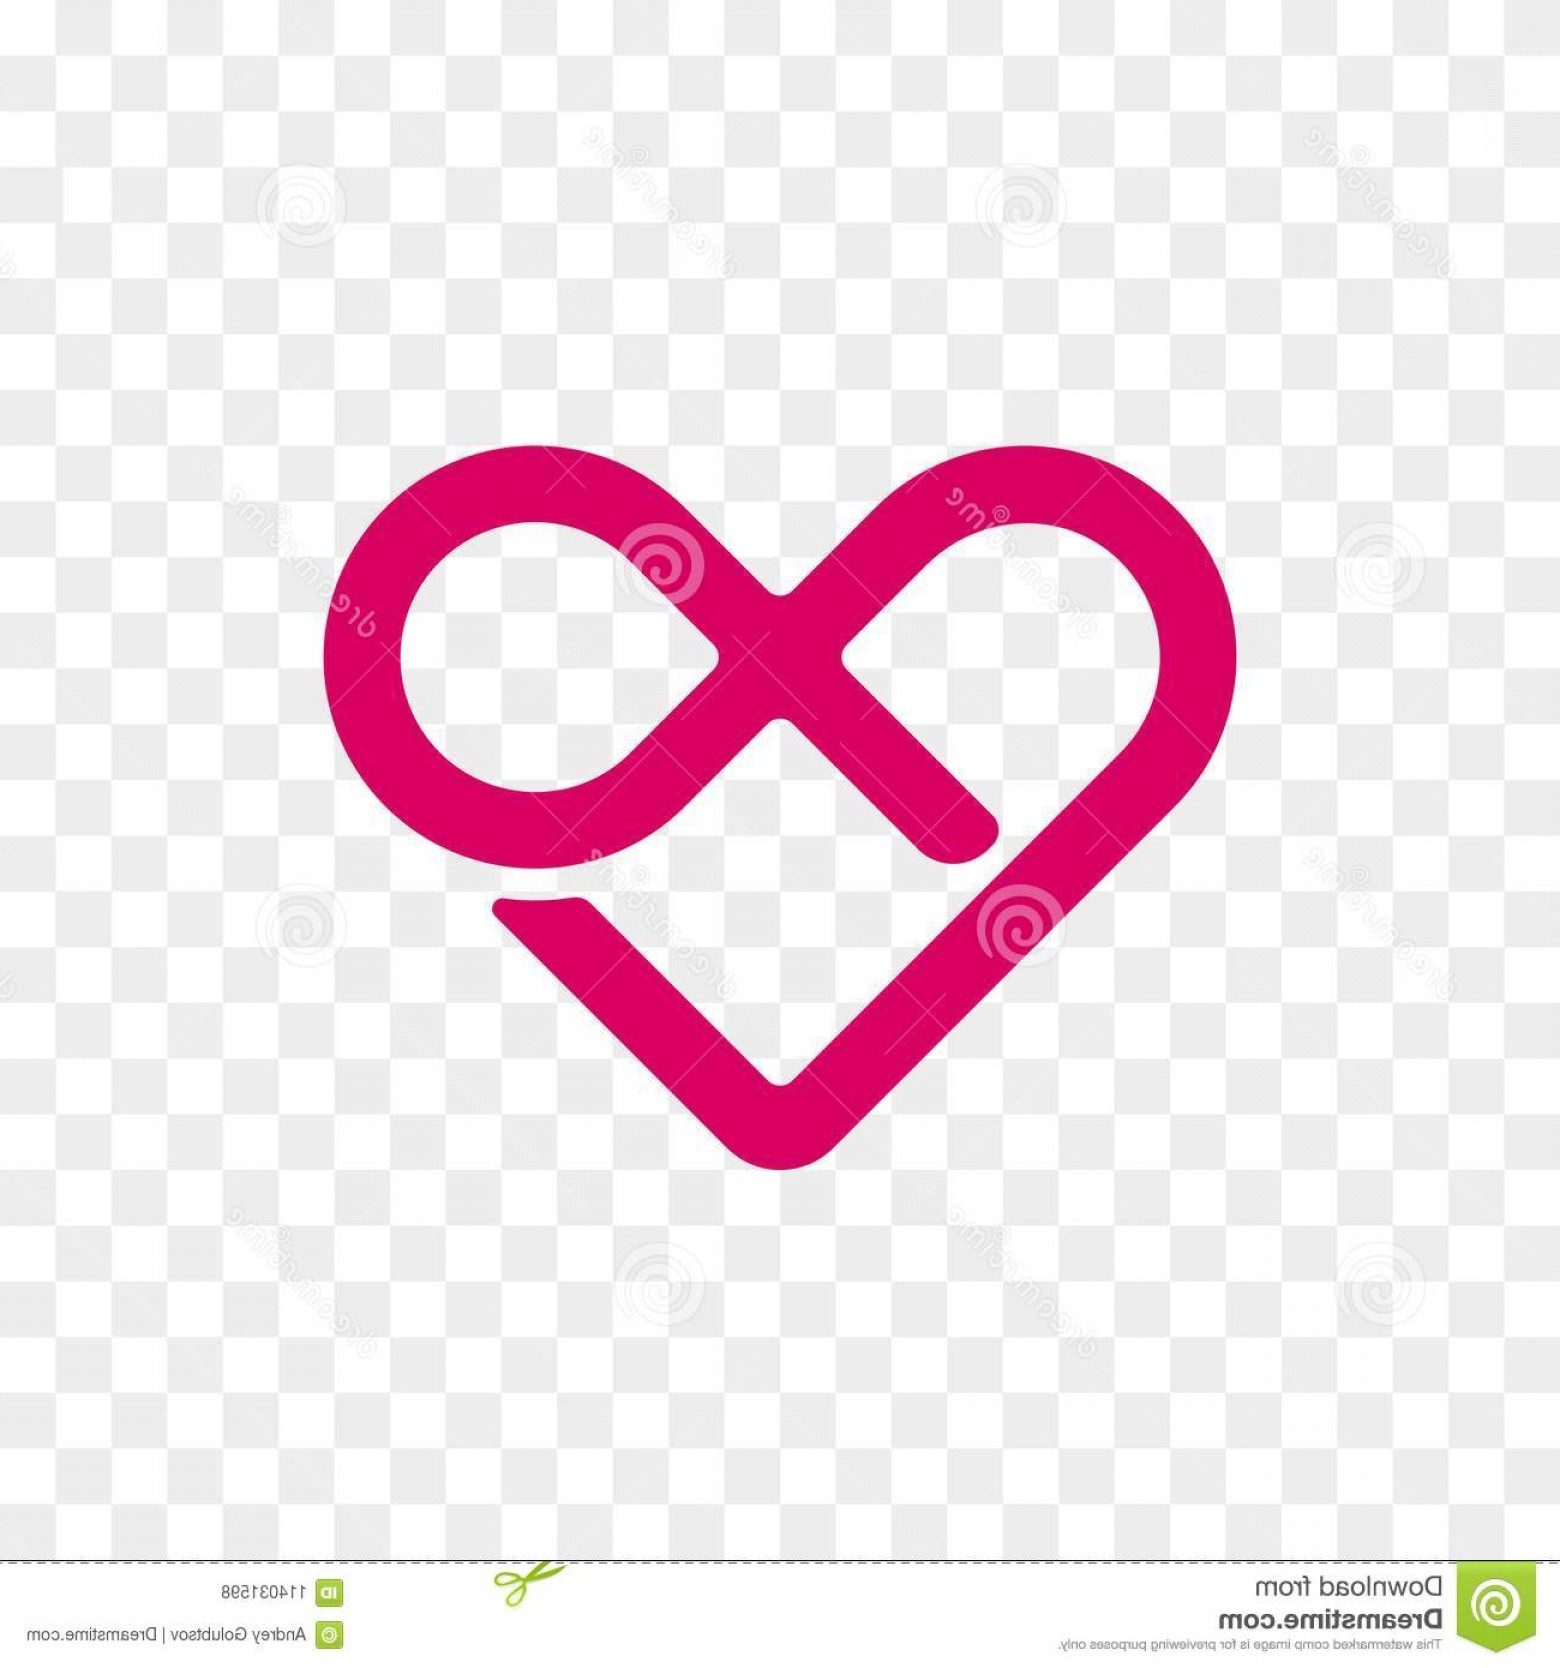 Vector Infinity Symbol Hearts: Heart Logo Vector Infinity Loop Icon Isolated Modern Symbol Cardiology Medical Center Charity Valentine Love Wedding Image